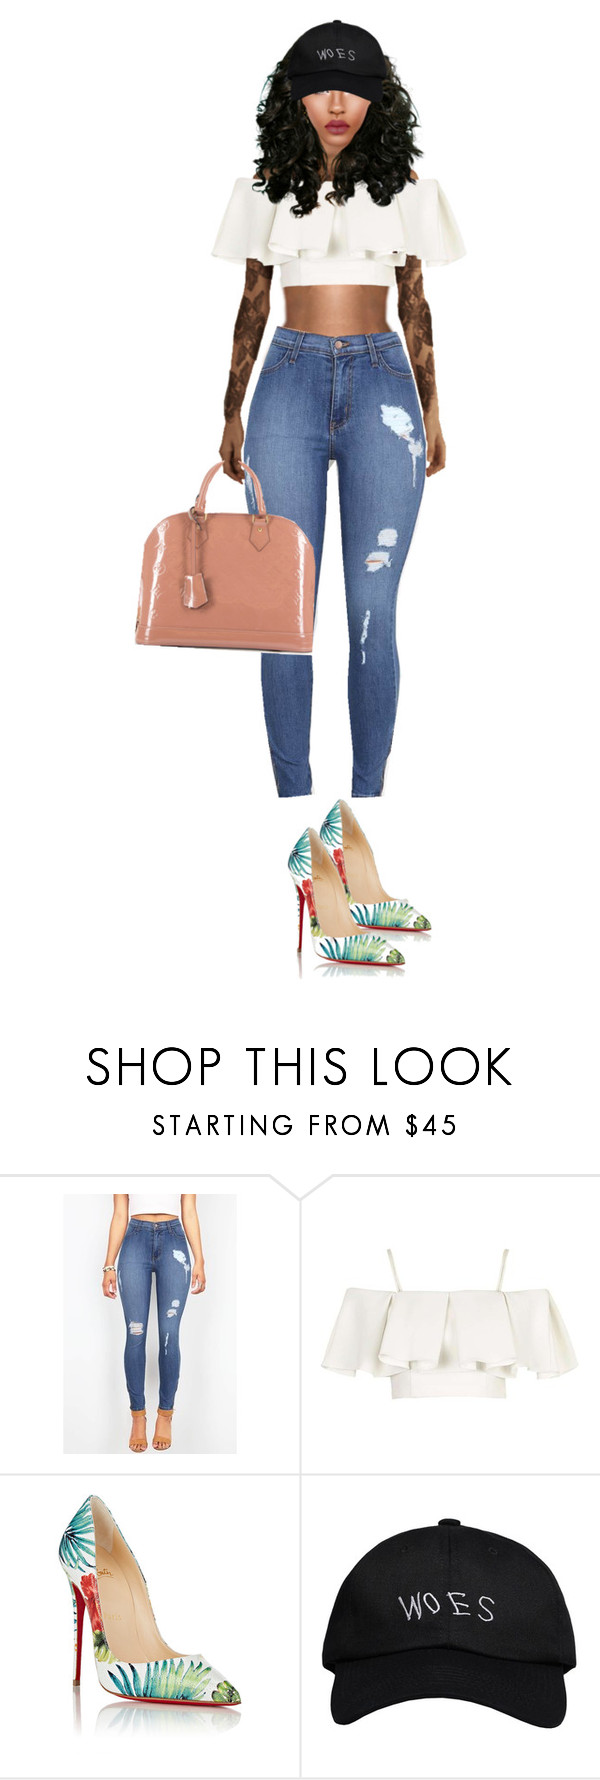 """T"" by queen-tianna ❤ liked on Polyvore featuring Topshop, Christian Louboutin, October's Very Own and Louis Vuitton"